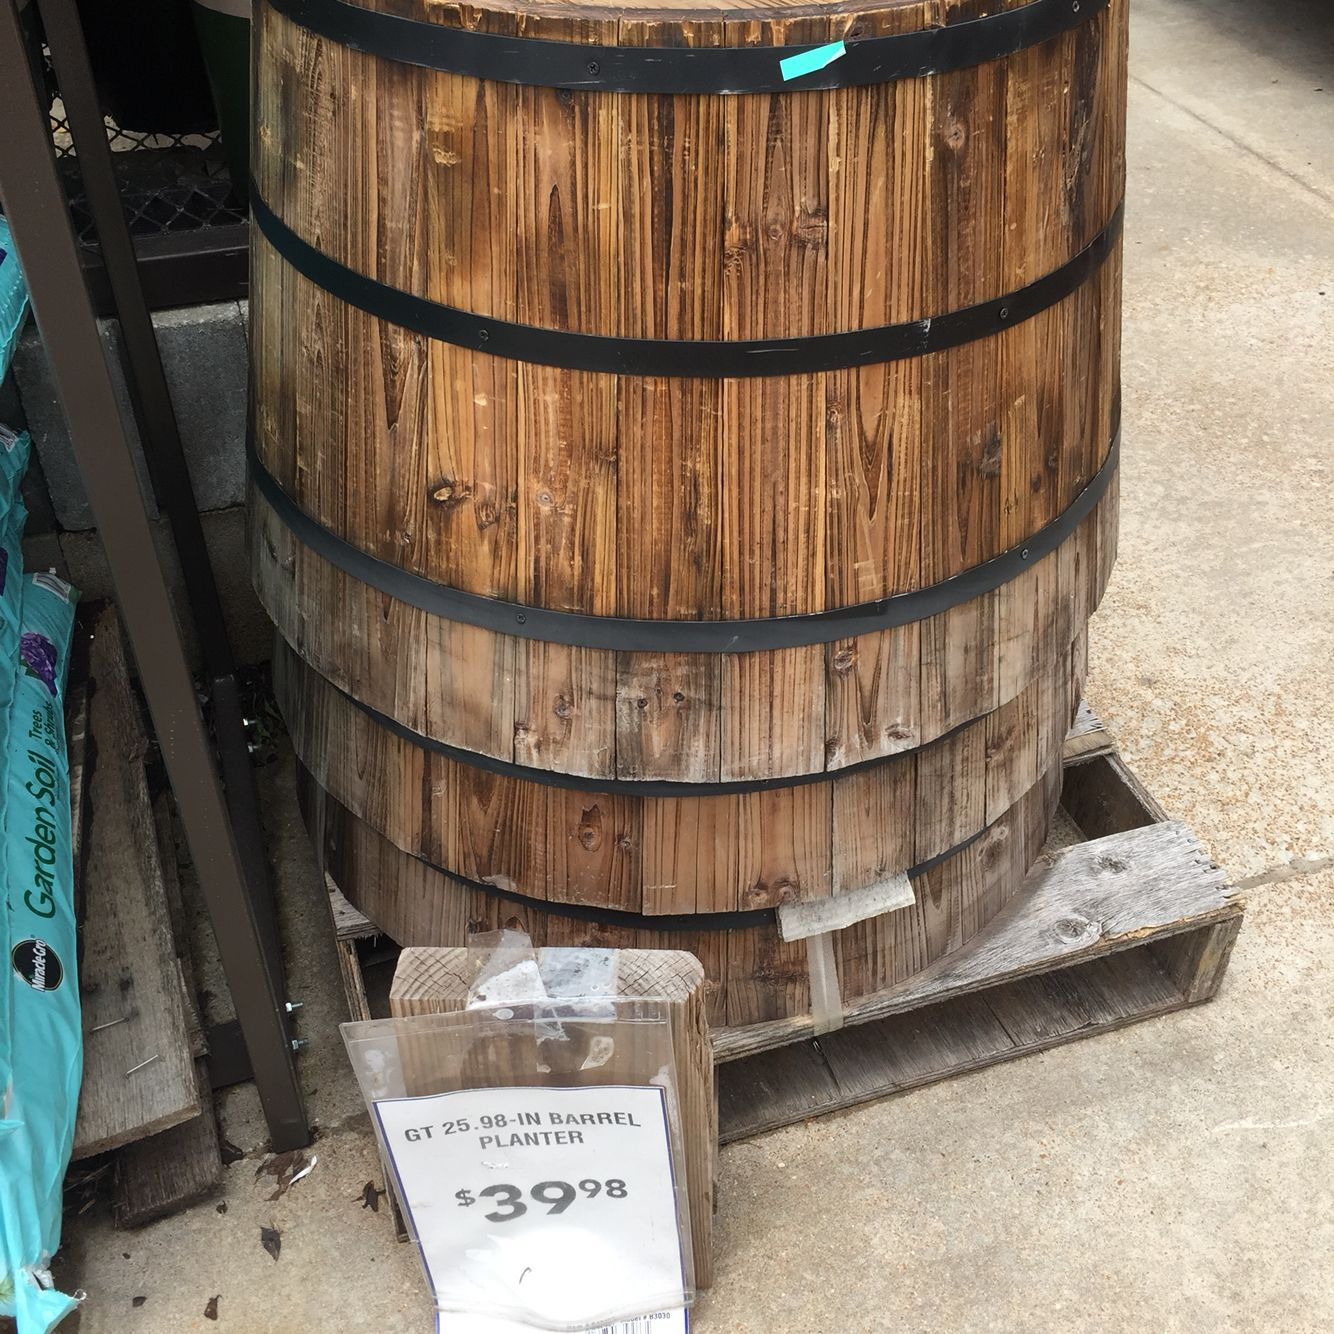 Barrel Planter Lowes Barrel Planter Barrel Glassware